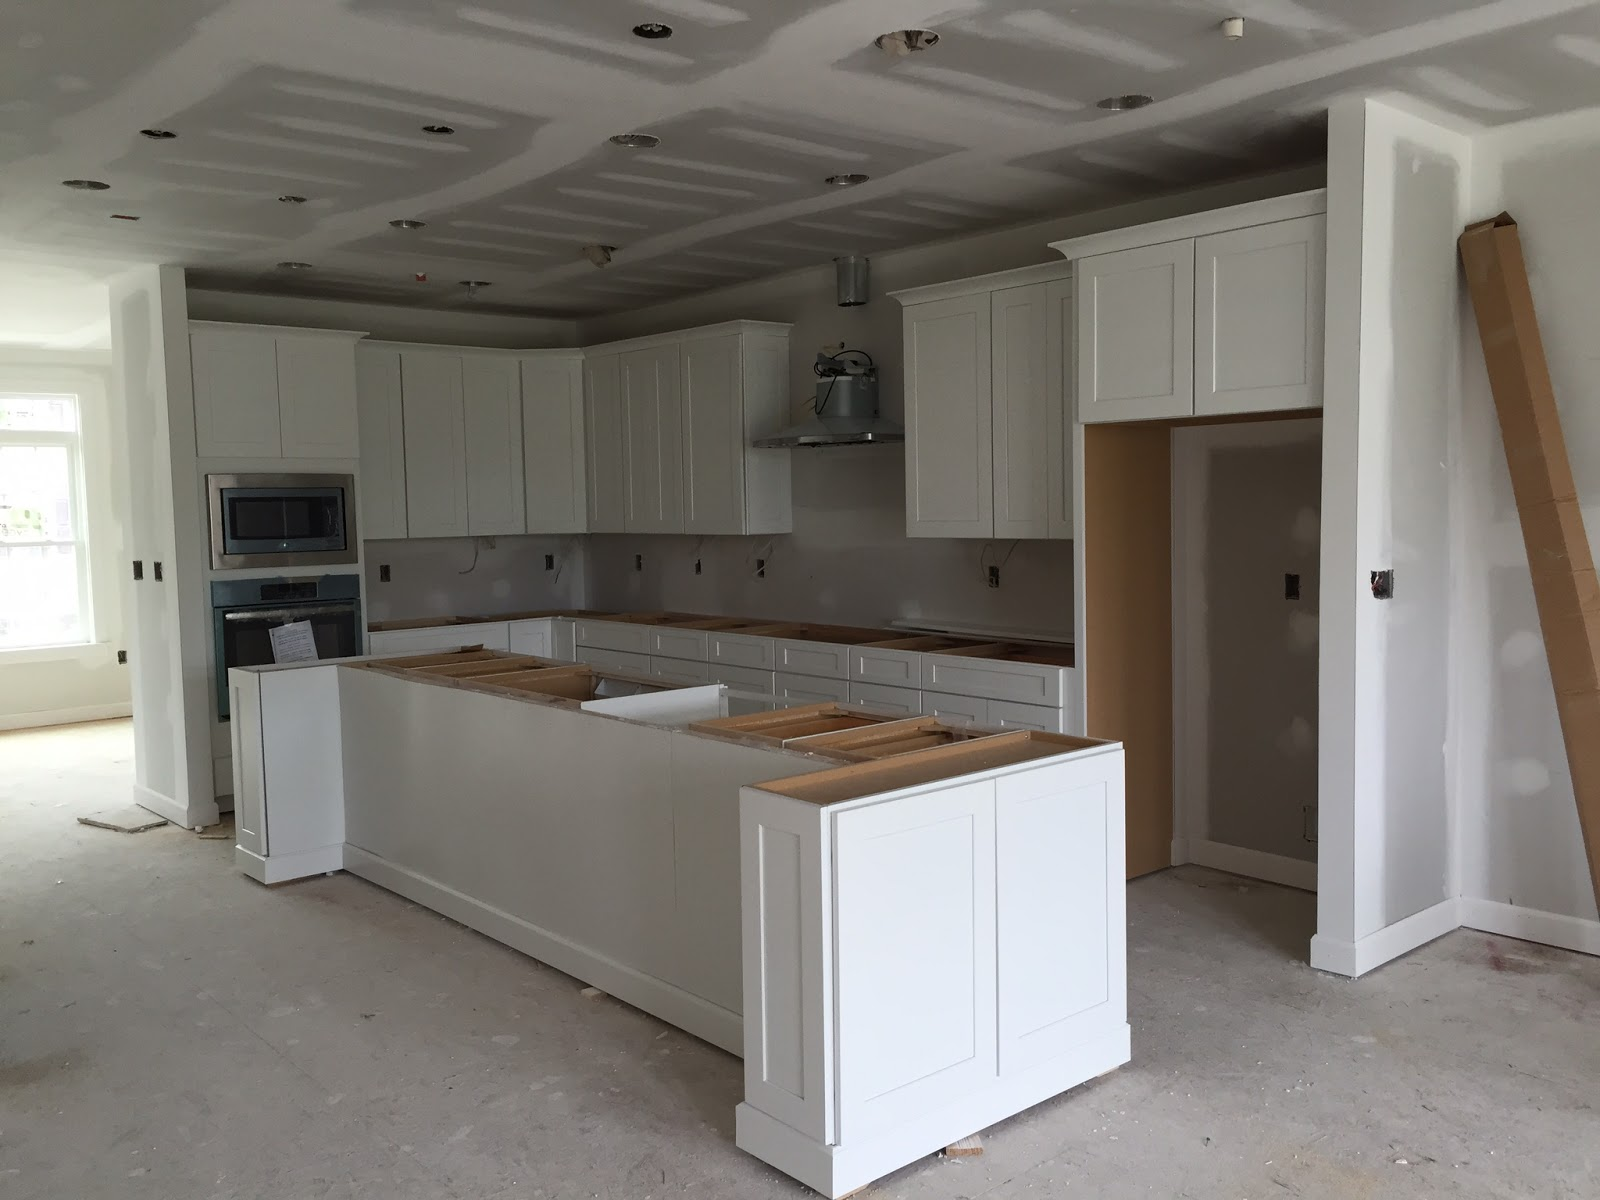 New White Kitchen Cabinets Kitchen Cabinets Building Our Nvhomes Andrew Carnegie